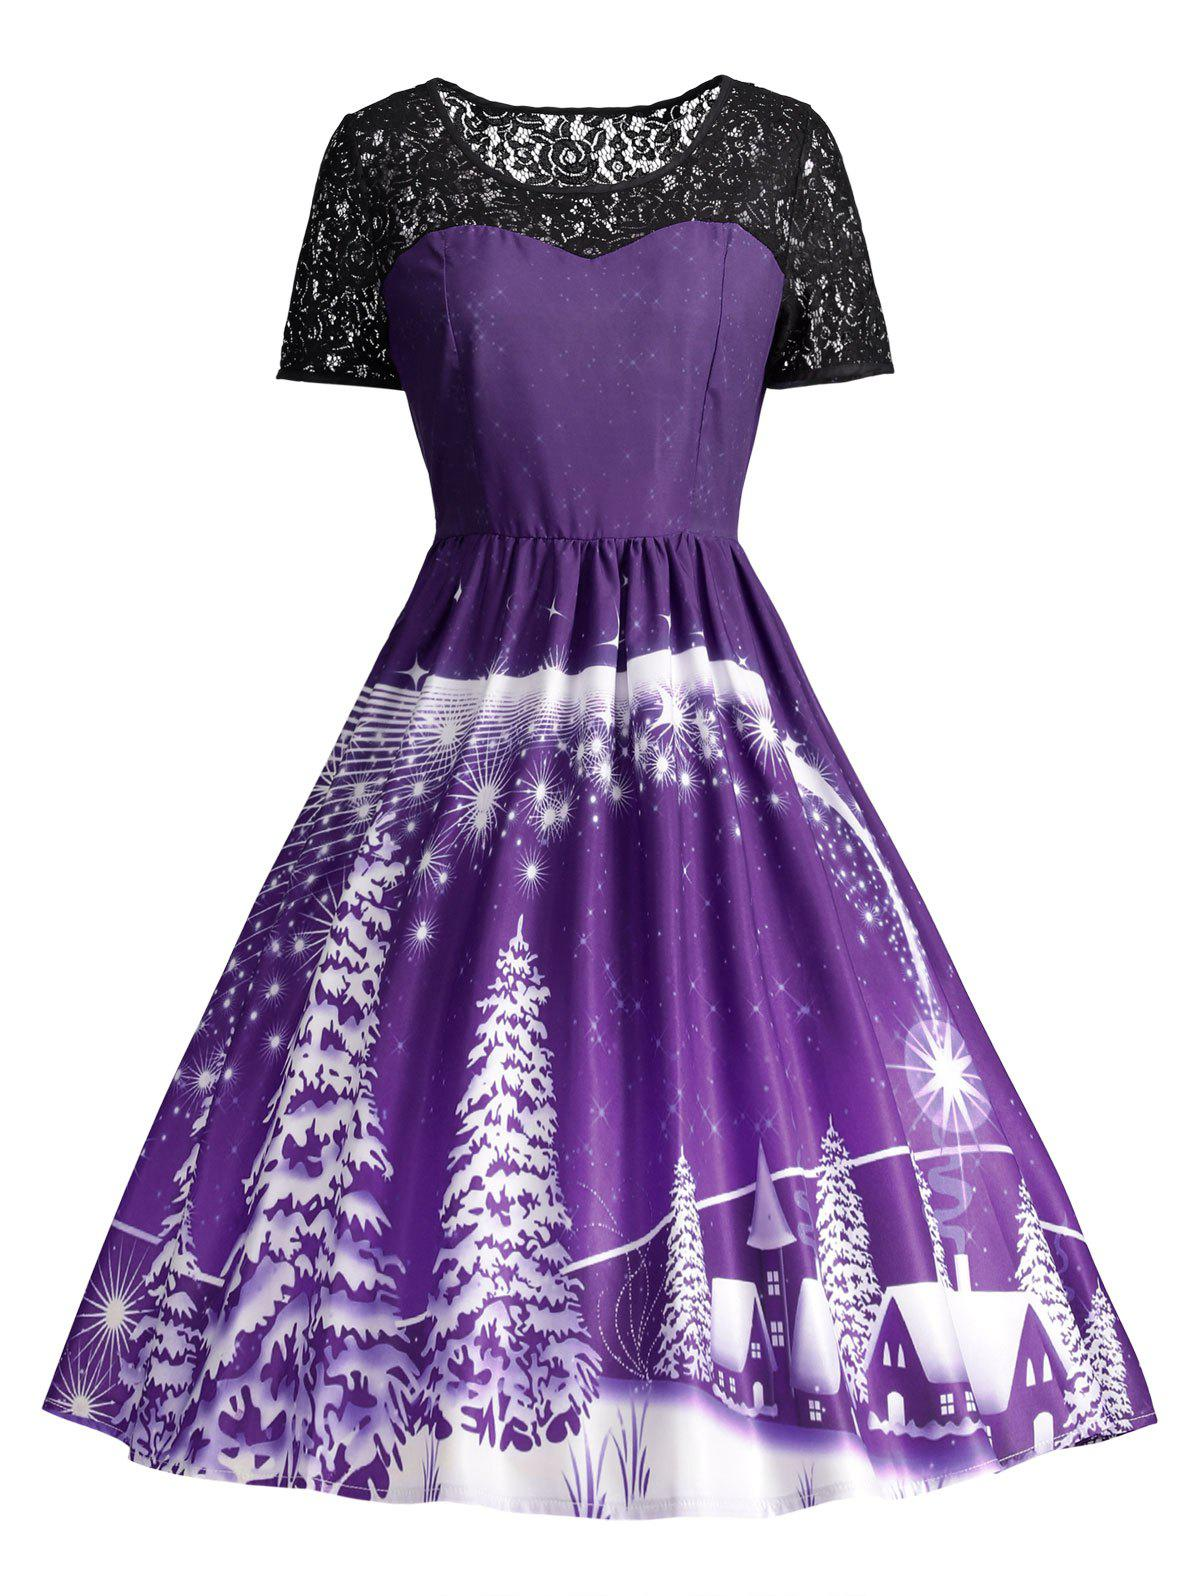 Ugly Christmas Party Lace Trim Vintage DressWOMEN<br><br>Size: XL; Color: PURPLE; Style: Cute; Material: Polyester,Spandex; Silhouette: A-Line; Dresses Length: Knee-Length; Neckline: Round Collar; Sleeve Length: Short Sleeves; Pattern Type: Others; With Belt: No; Season: Fall,Spring; Weight: 0.3150kg; Package Contents: 1 x Dress;